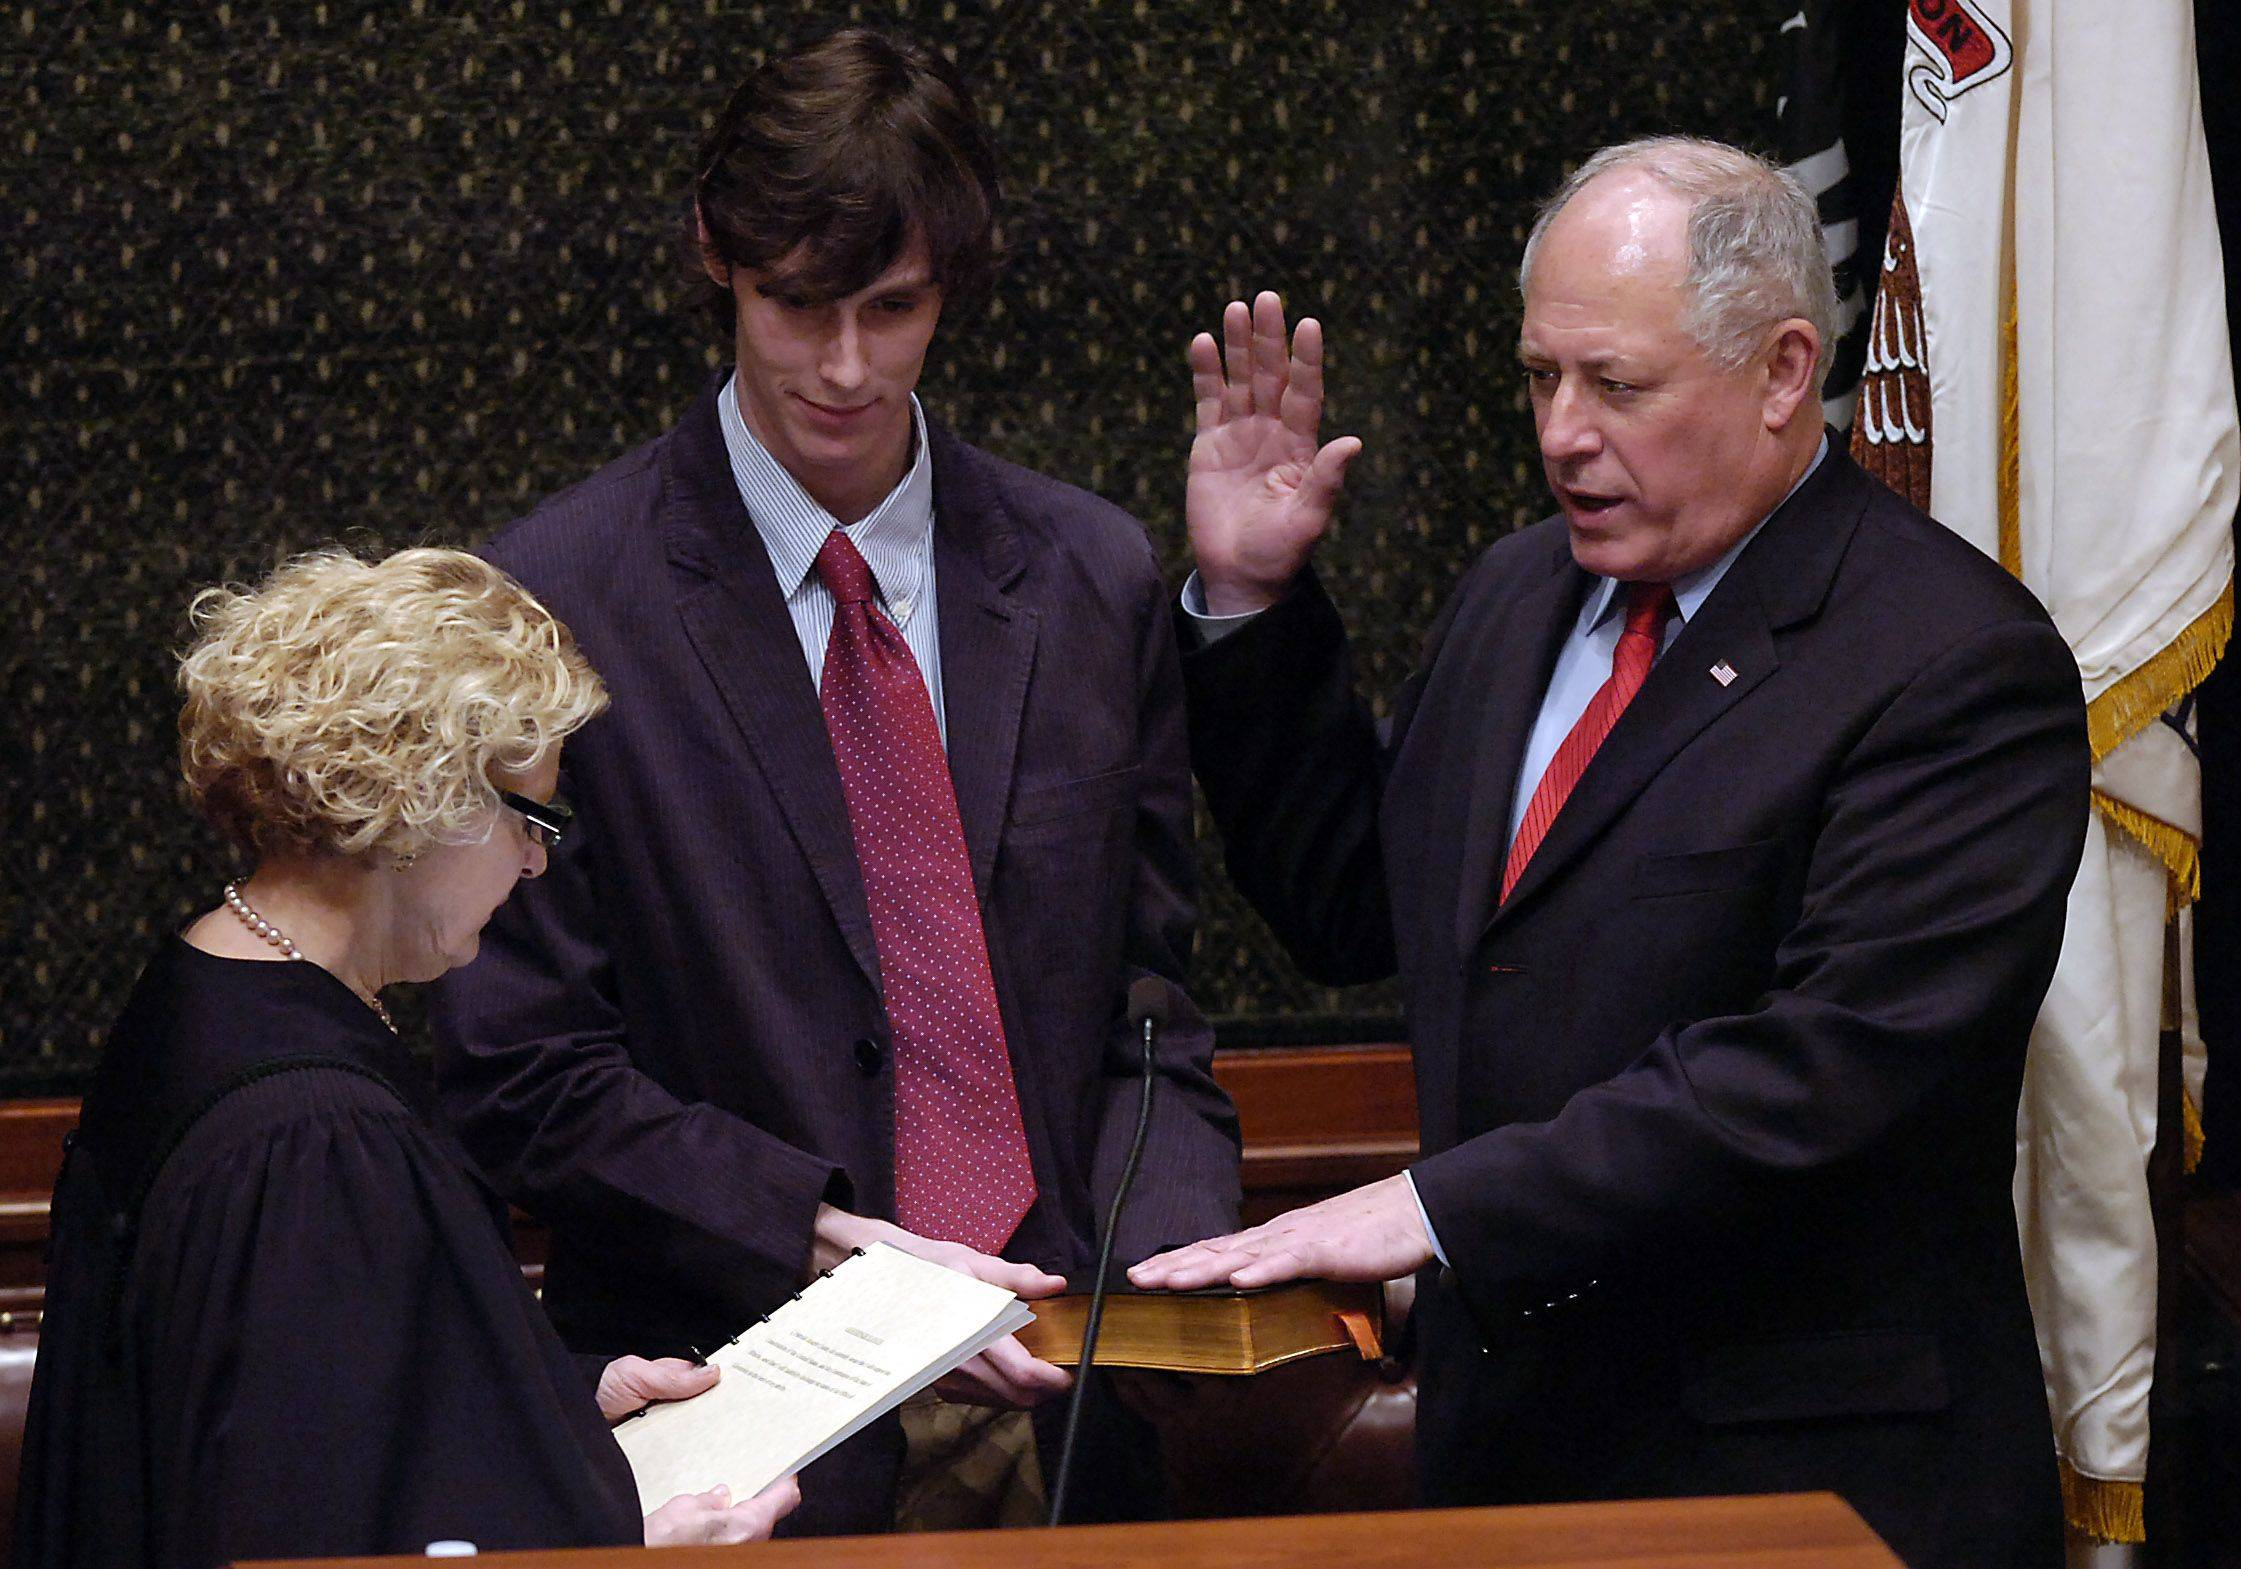 Quinn is sworn in as the governor of Illinois in 2009.